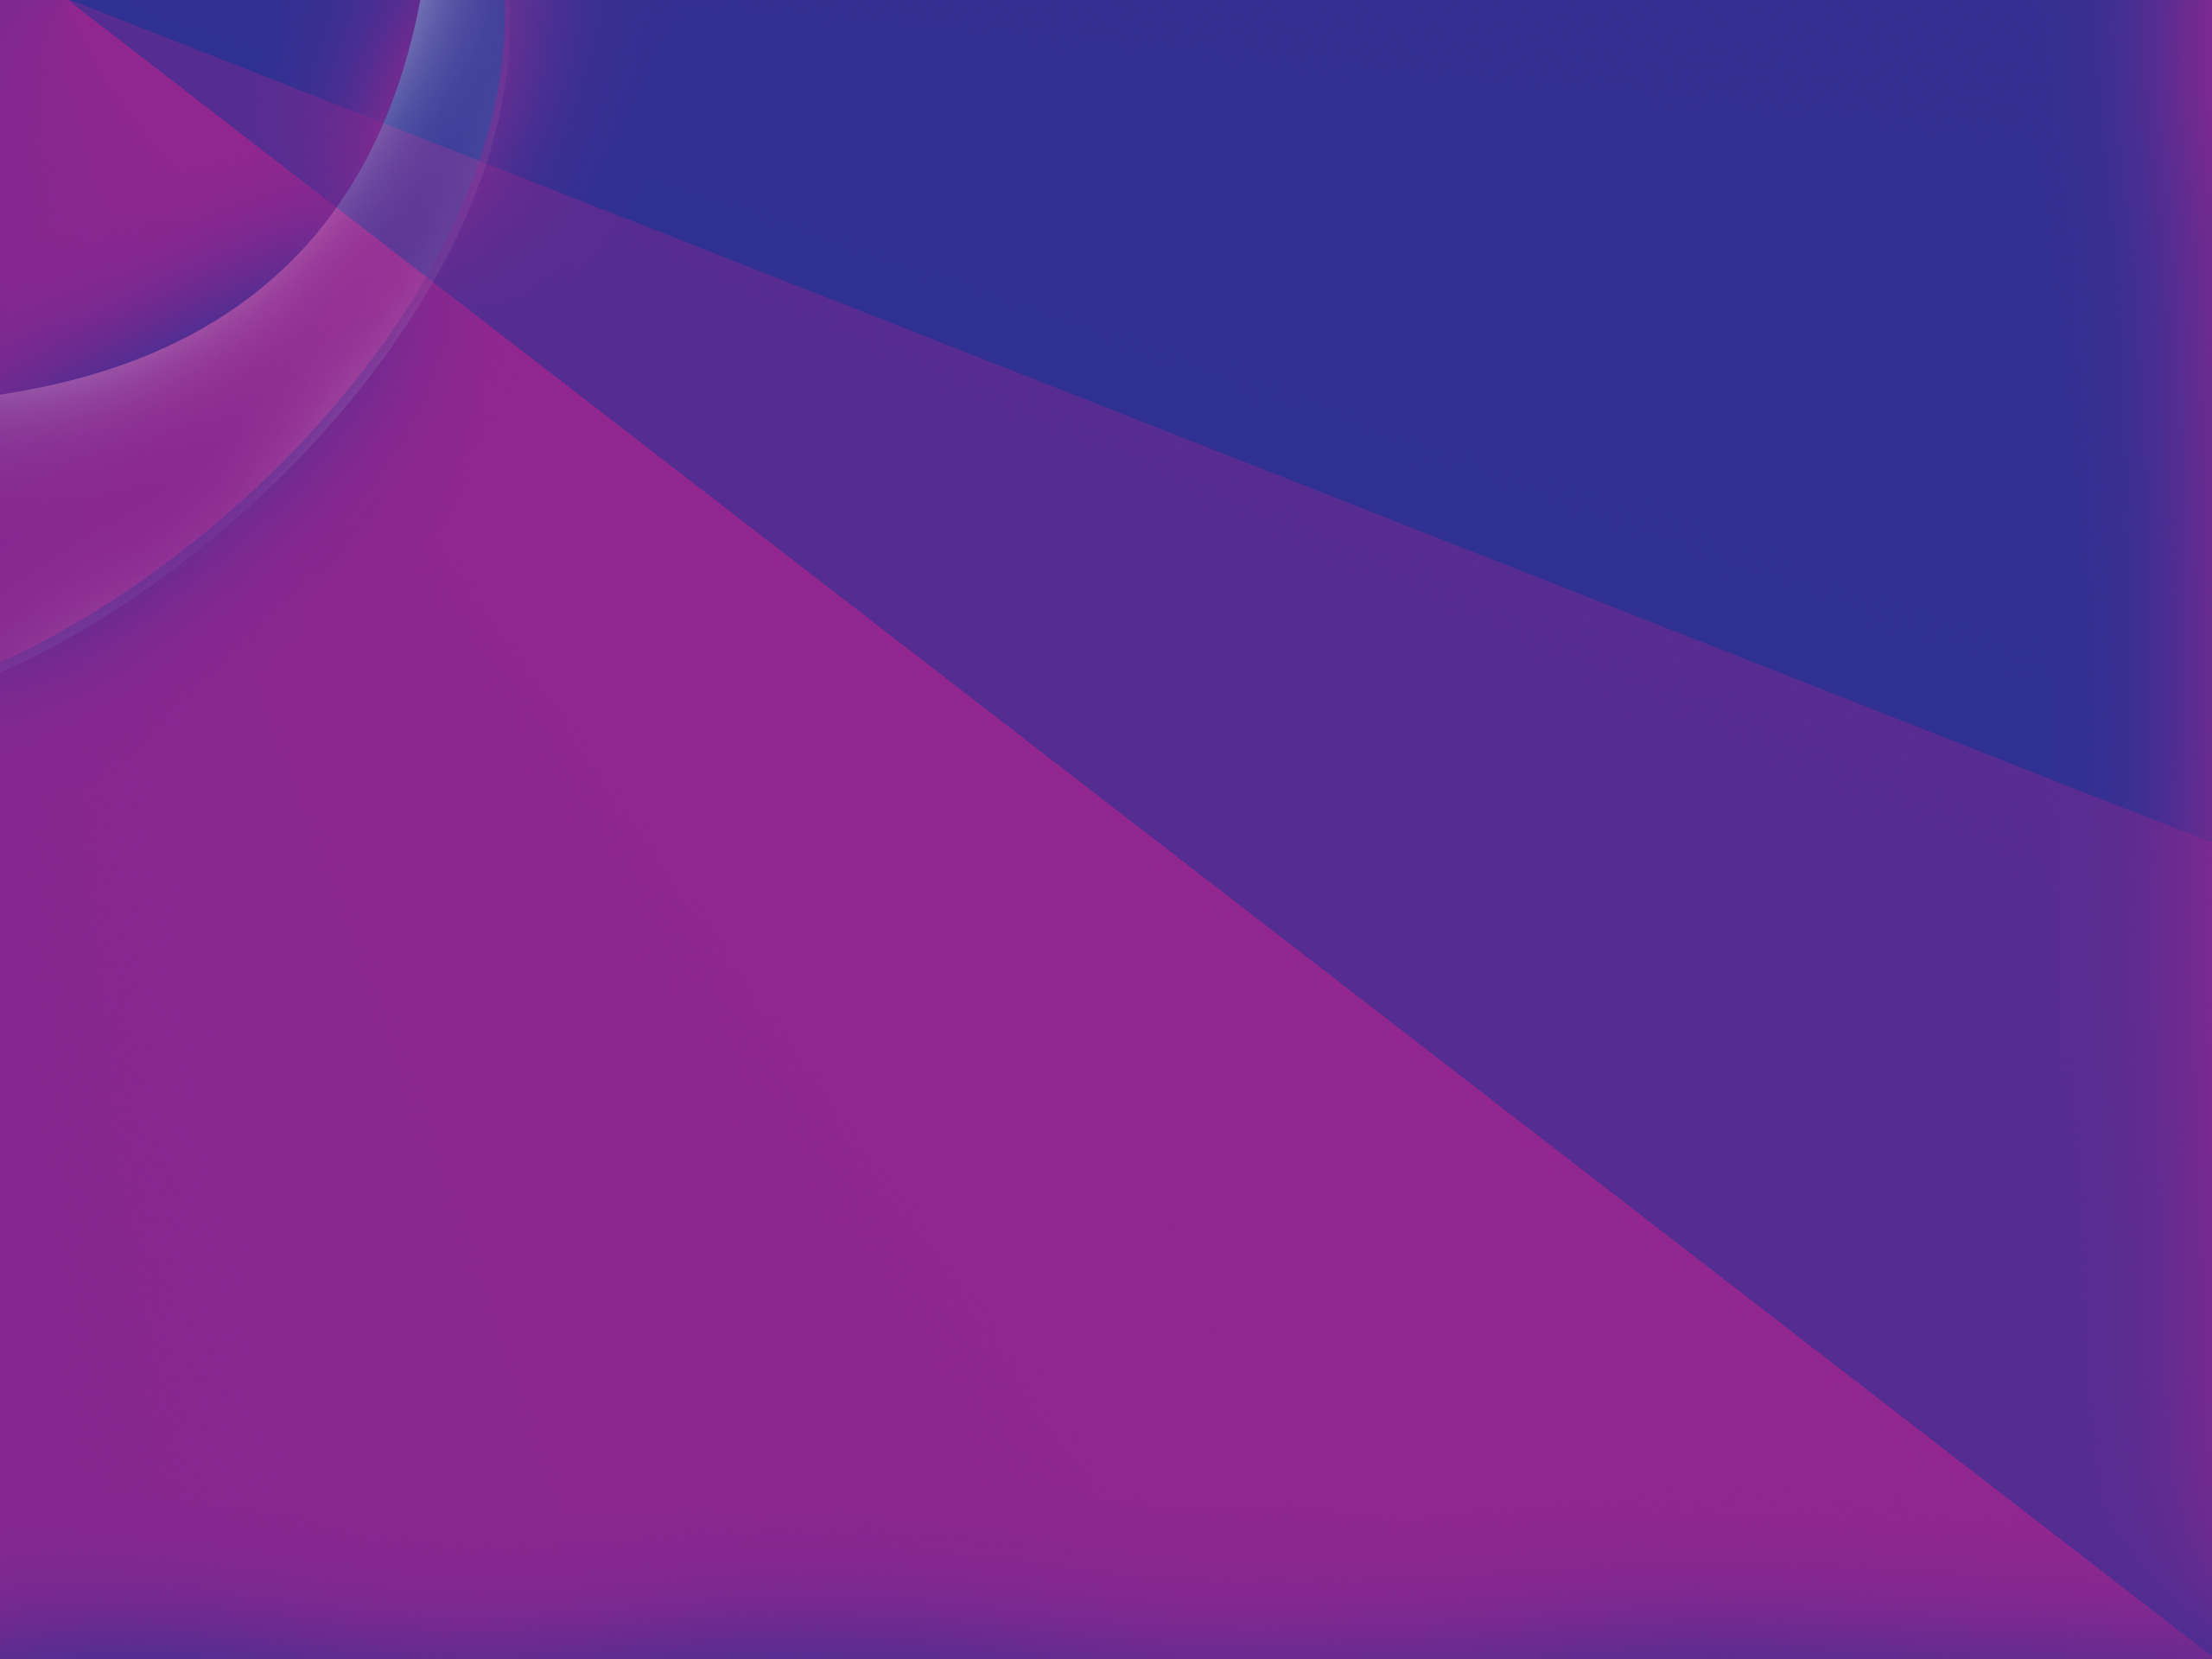 Wallpaper Purple and Blue by Too Fast 2560x1920